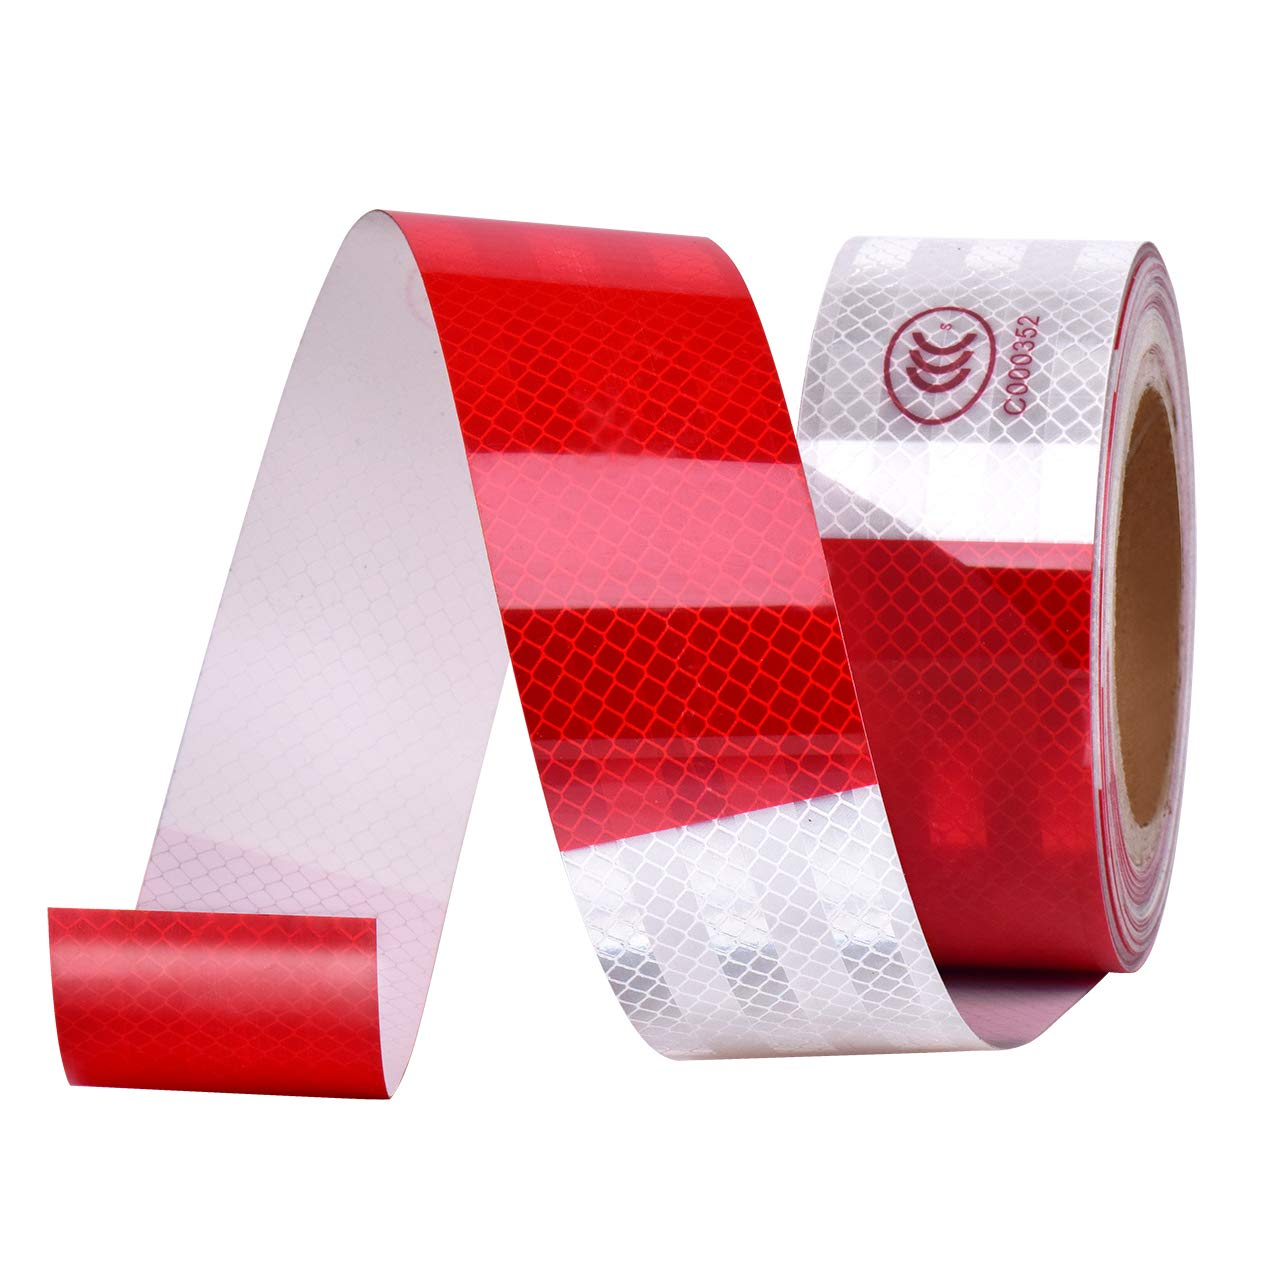 DEDC Waterproof DOT-C2 Reflective Red/White Tape,Conspicuity Safety Warning Self-adhesive Tape for Trailers Agricultural Equipment Vehicles Helmet Cars Bicycles Motorcycle (50 feet)